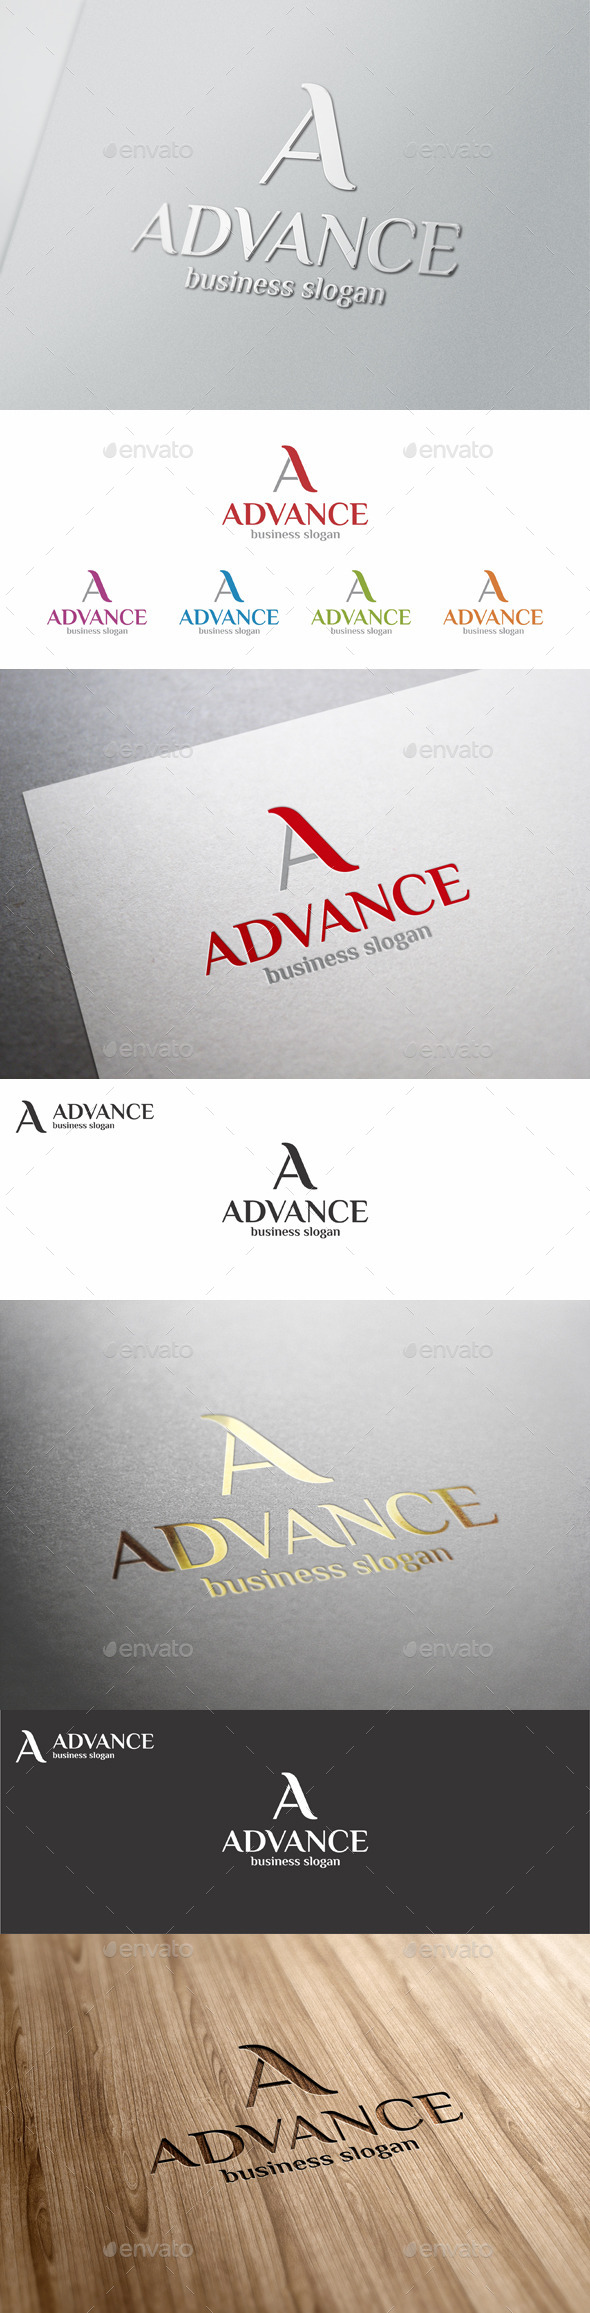 A Logo Letter Template - Advance - Letters Logo Templates